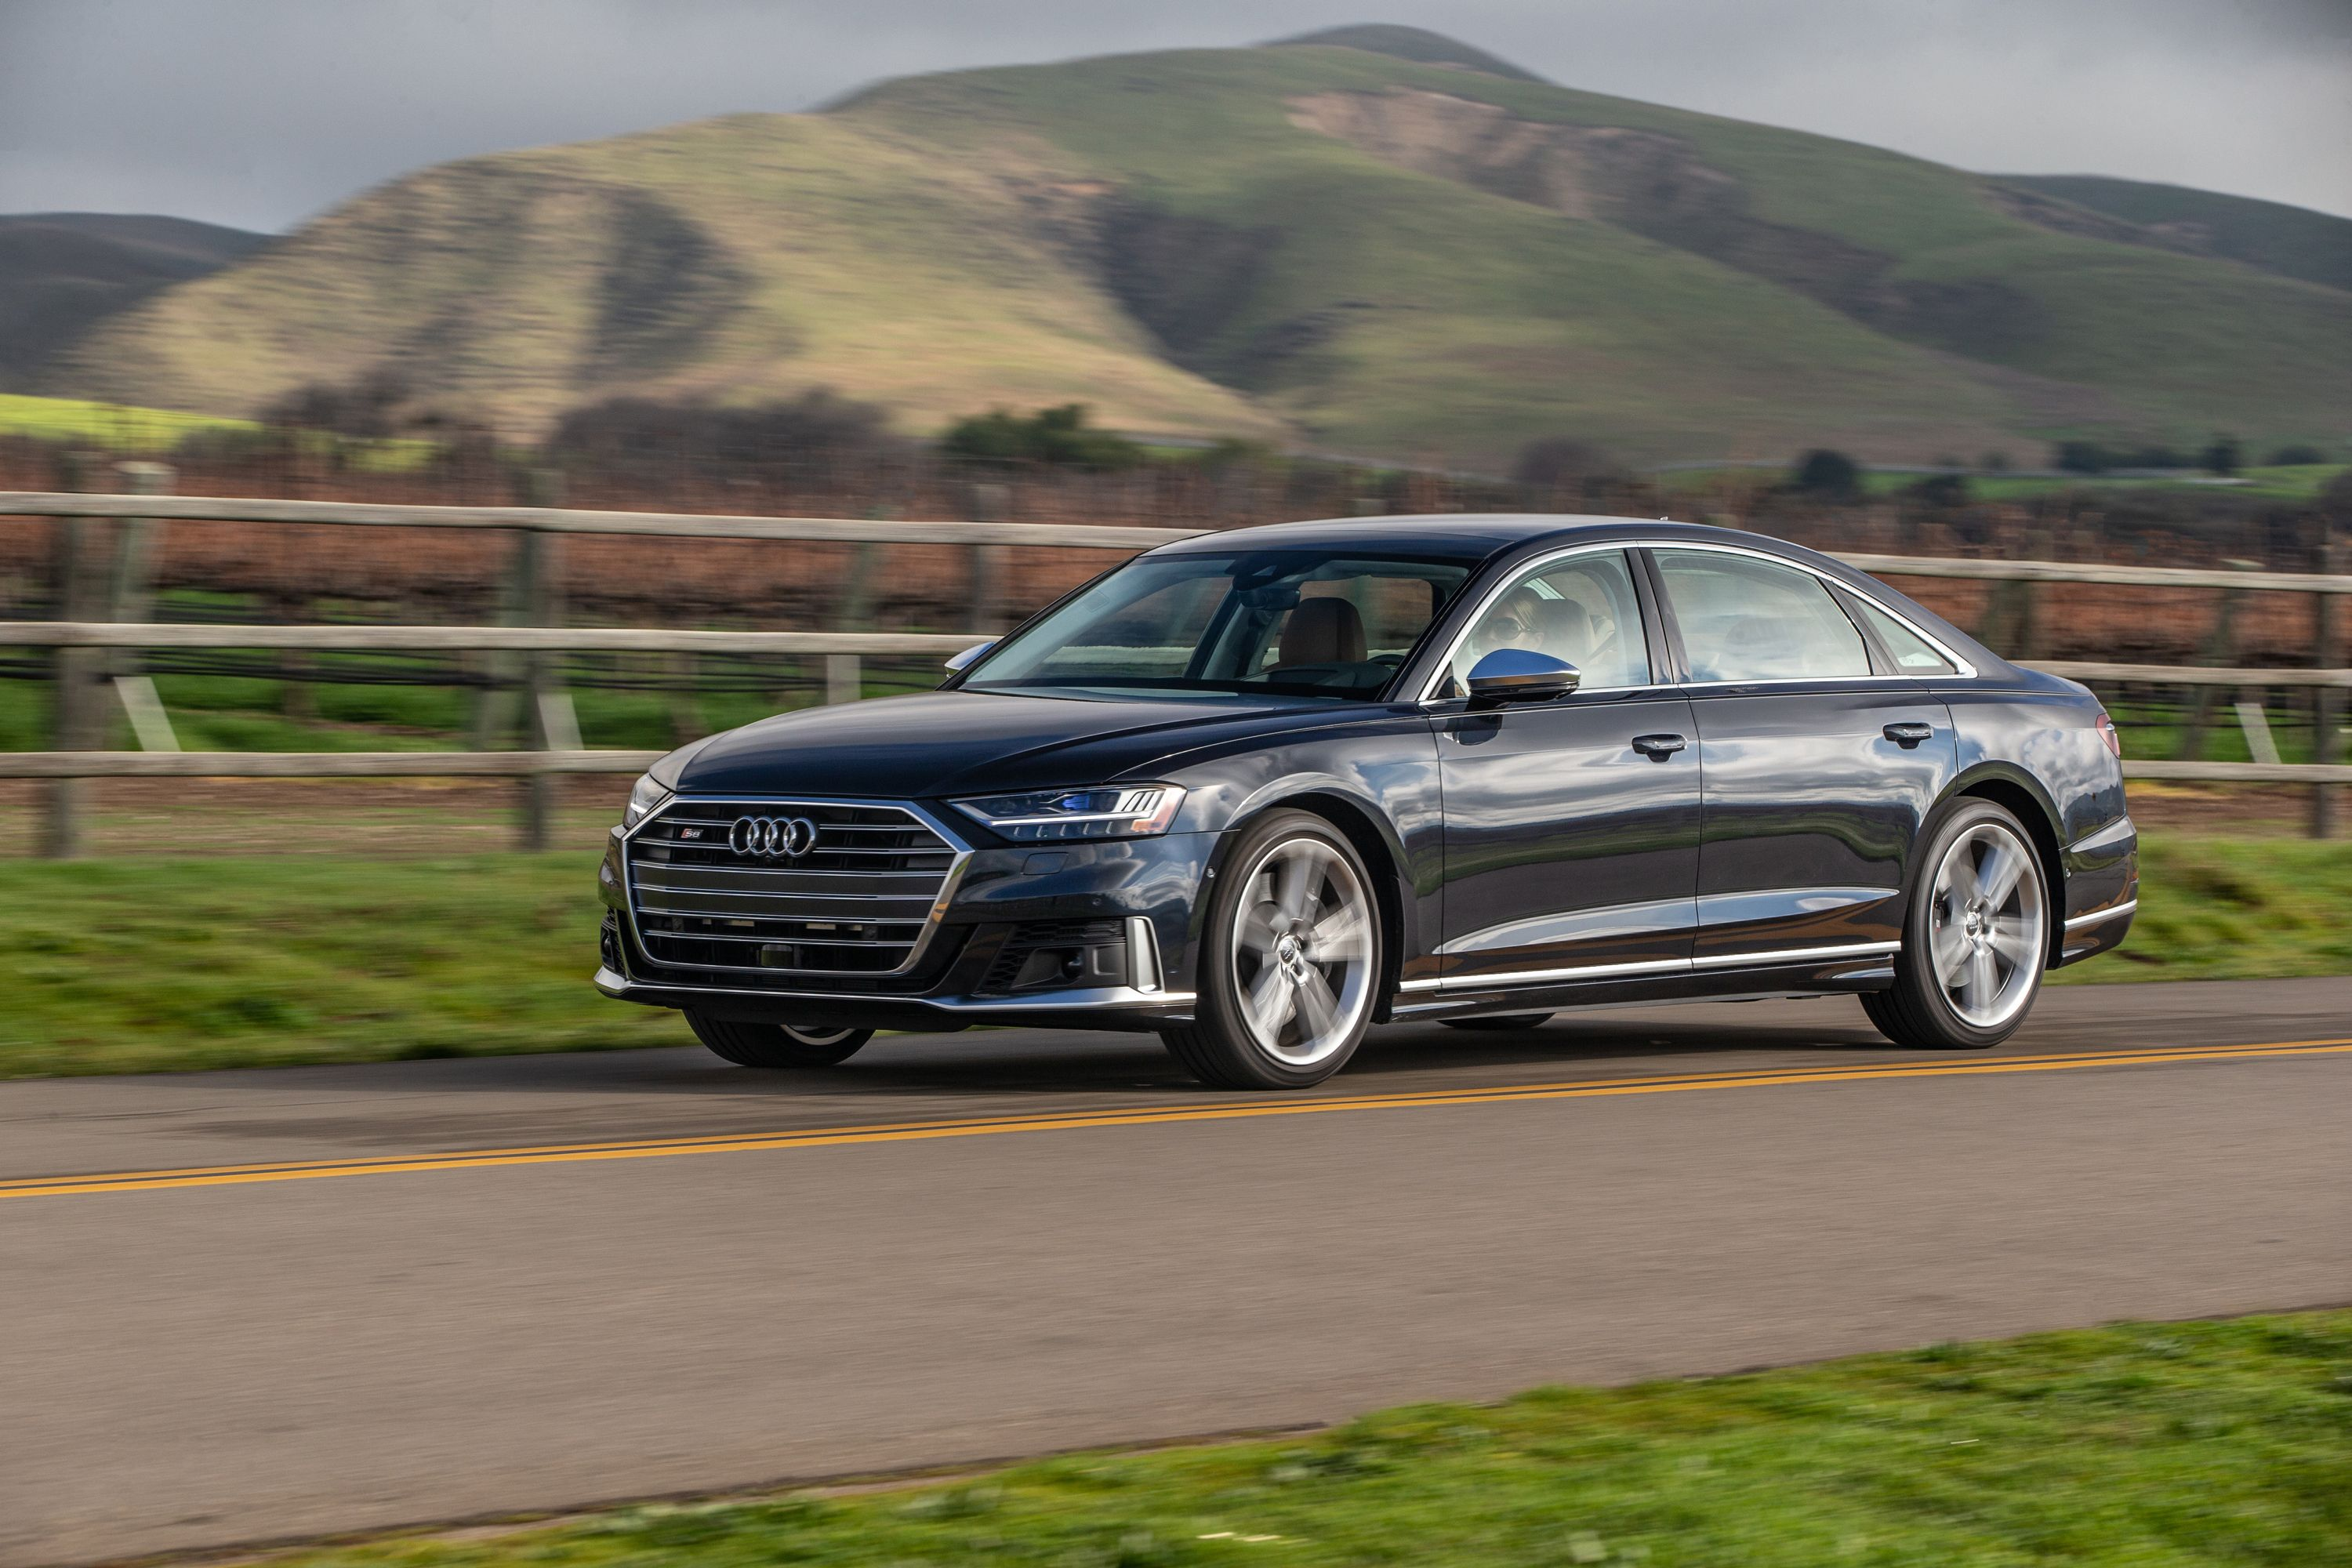 2021 Audi S8 Review, Pricing, and Specs